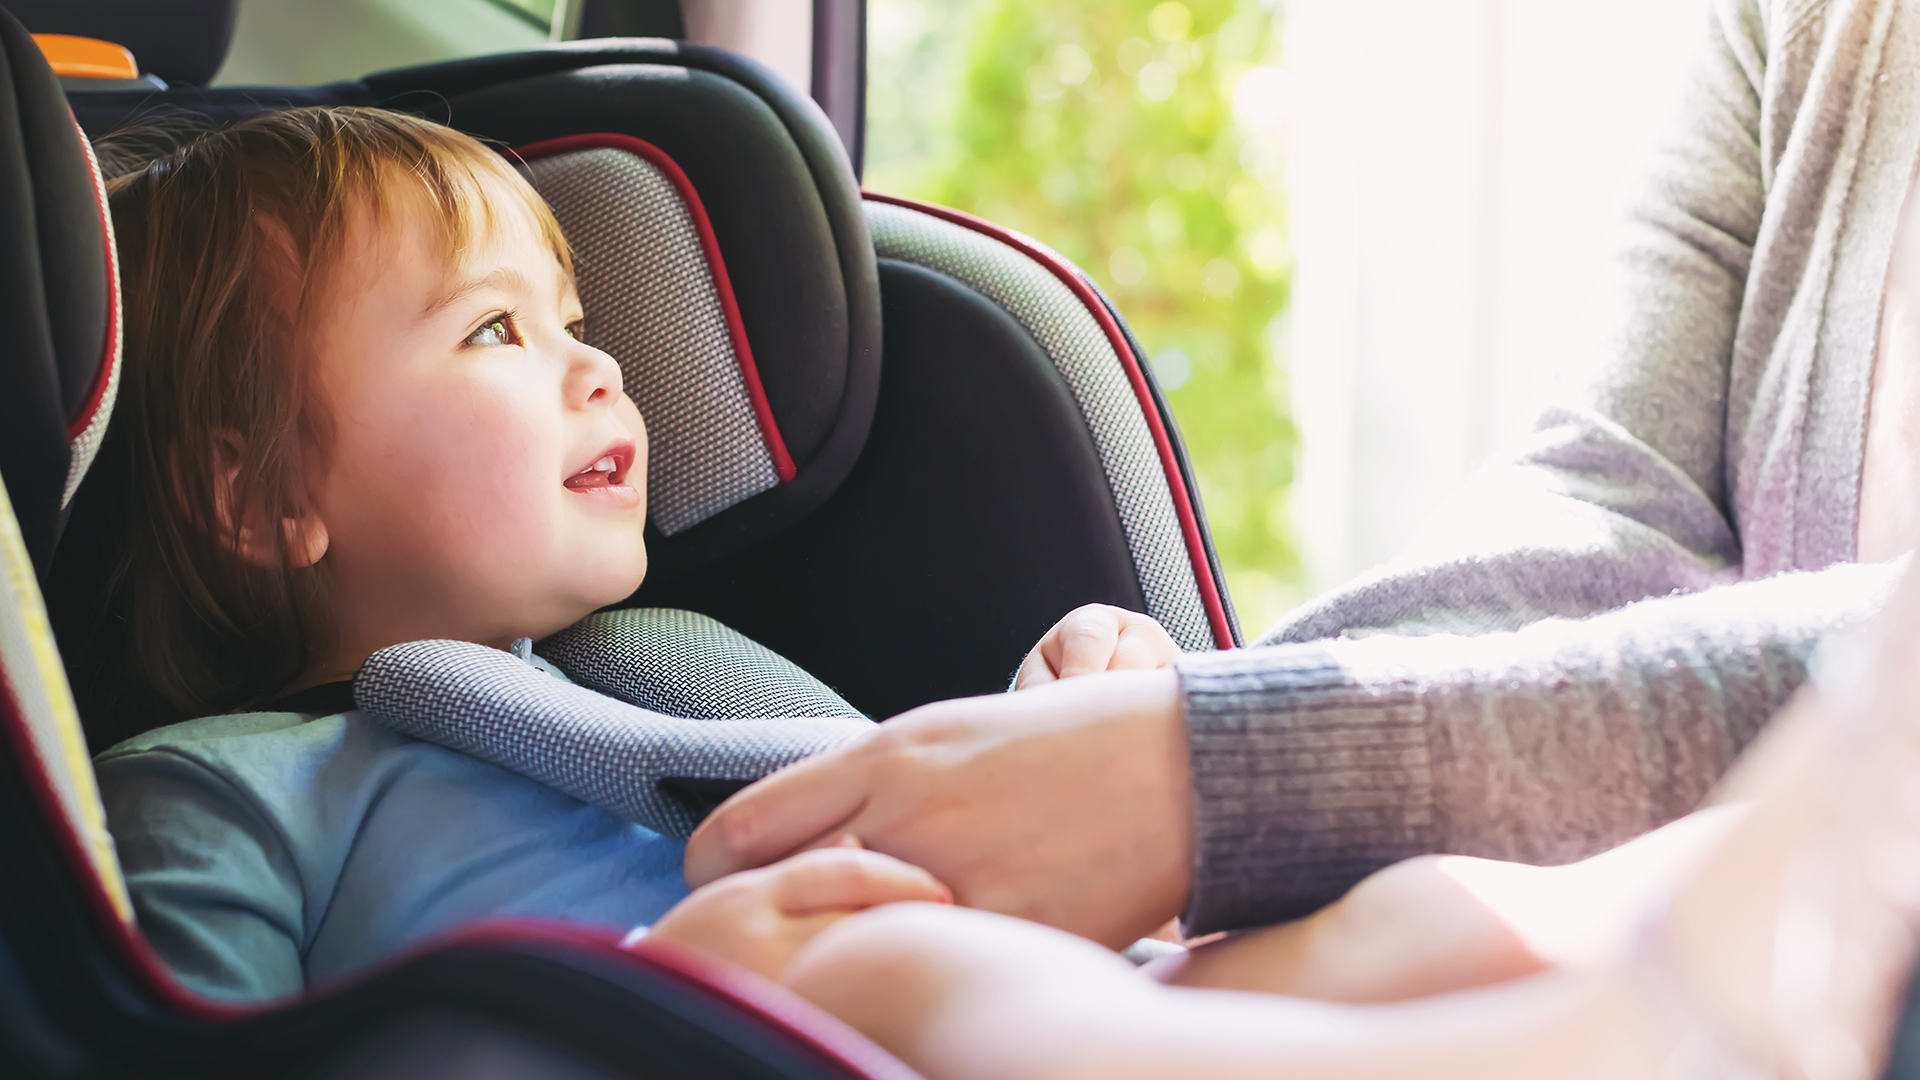 Preserve Your Car's Interior With These Car Seat Protectors